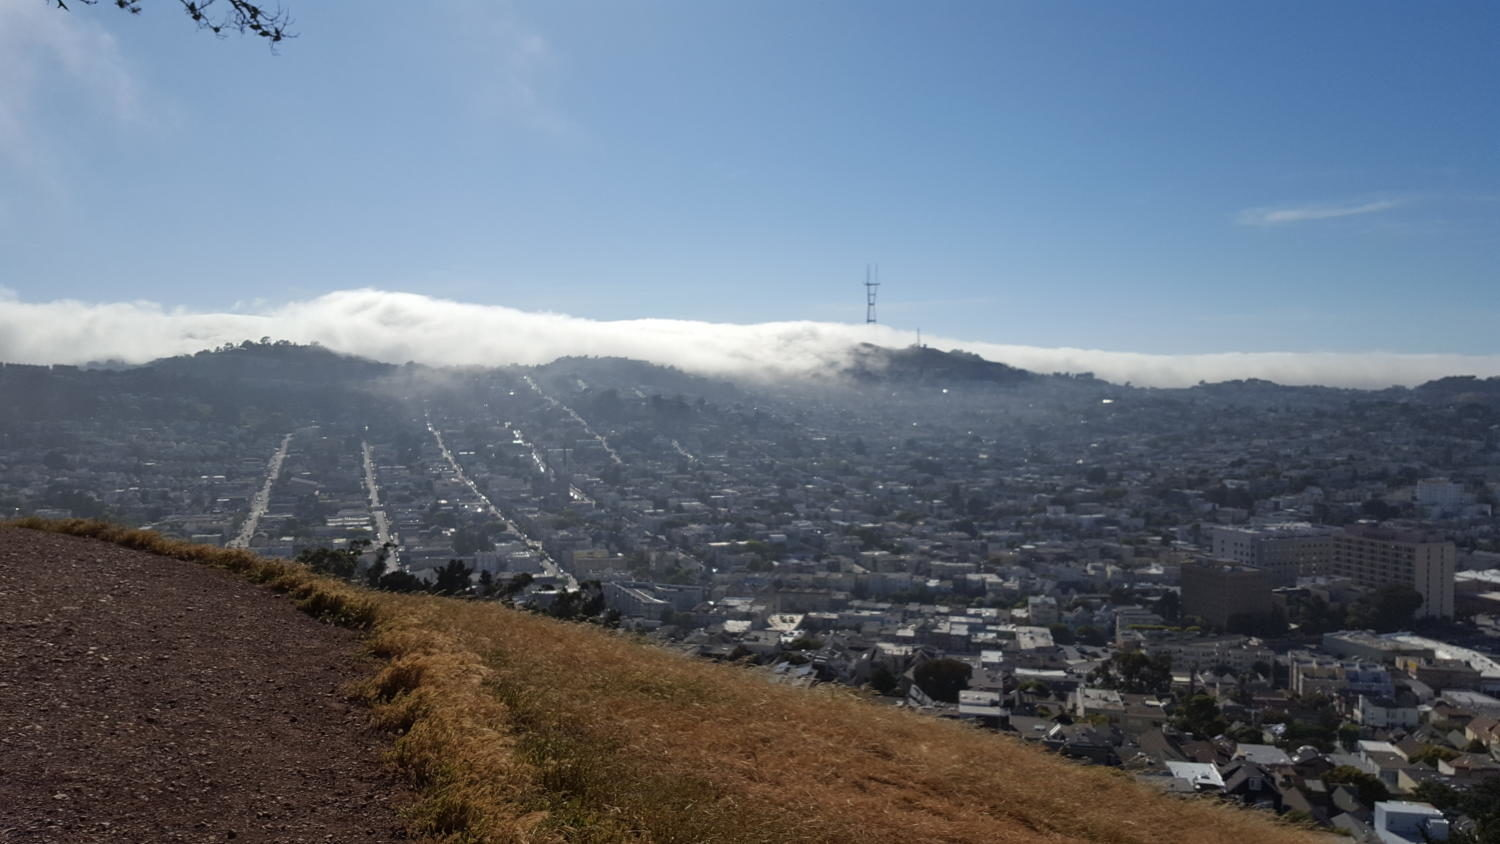 View from Bernal Heights. Taken May 22, 2017.